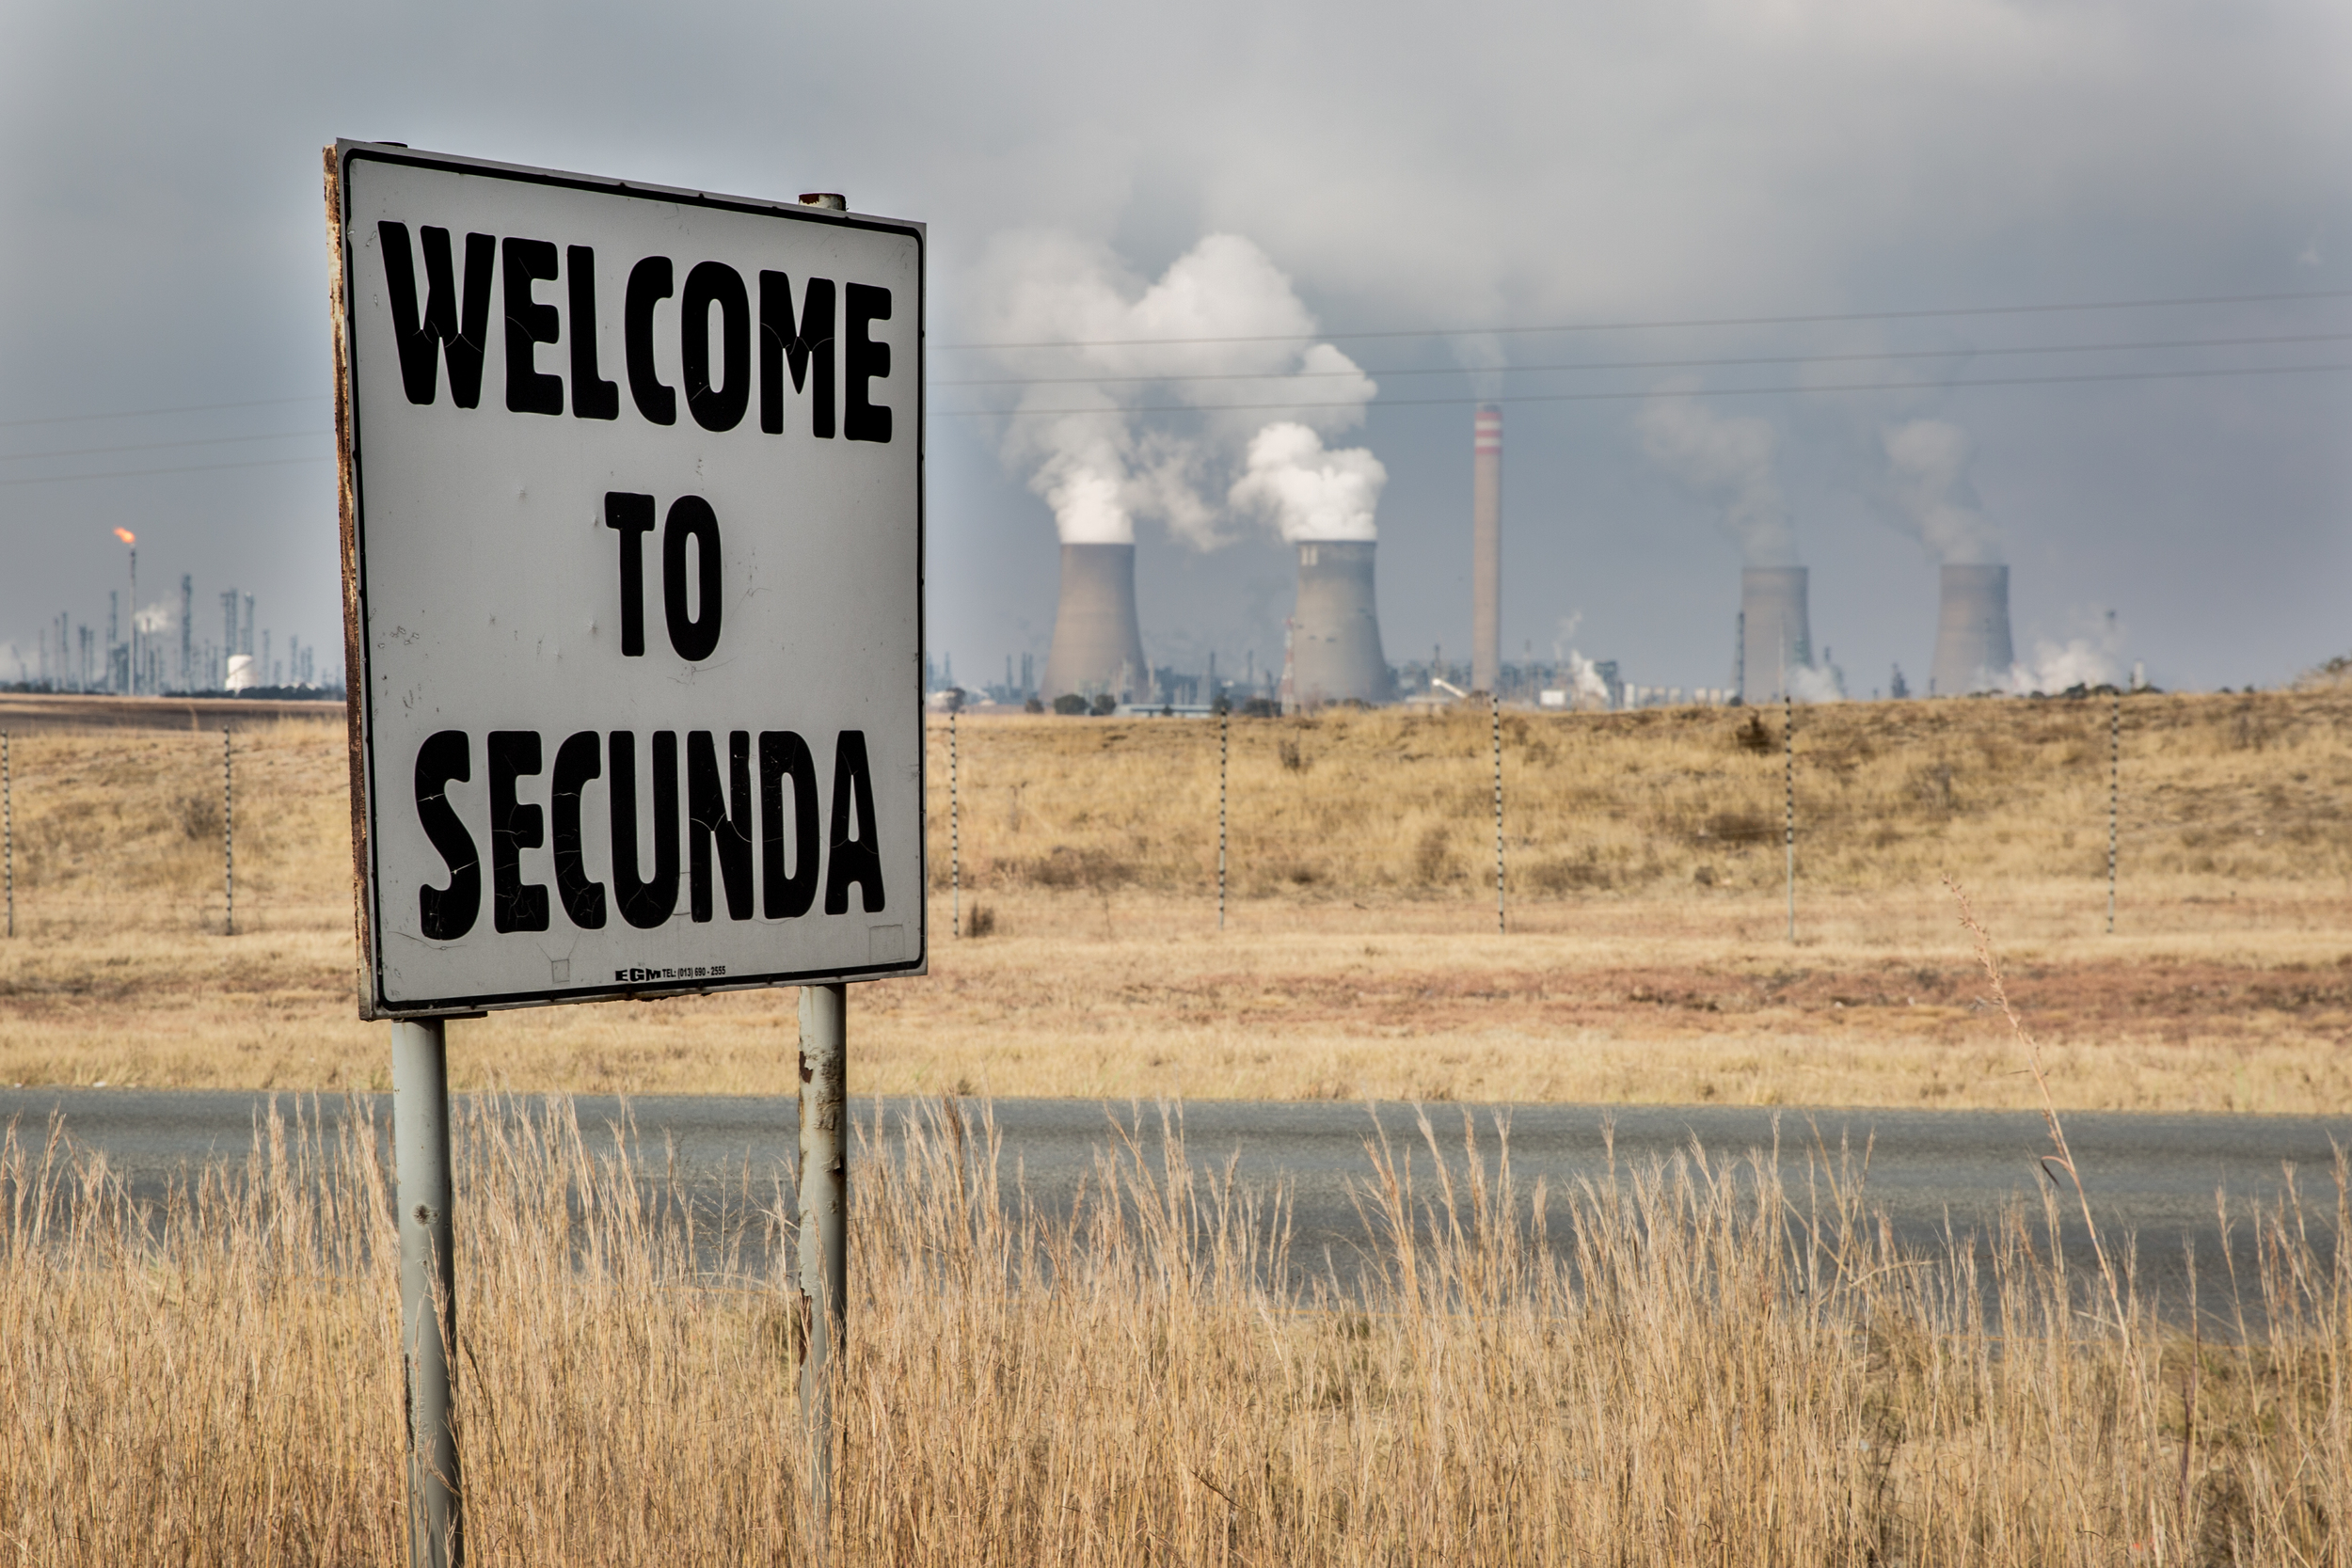 CR0A8049_SOUTHAFRICA_WELCOMETOSECUNDA_SIGN_PLANTS.jpg